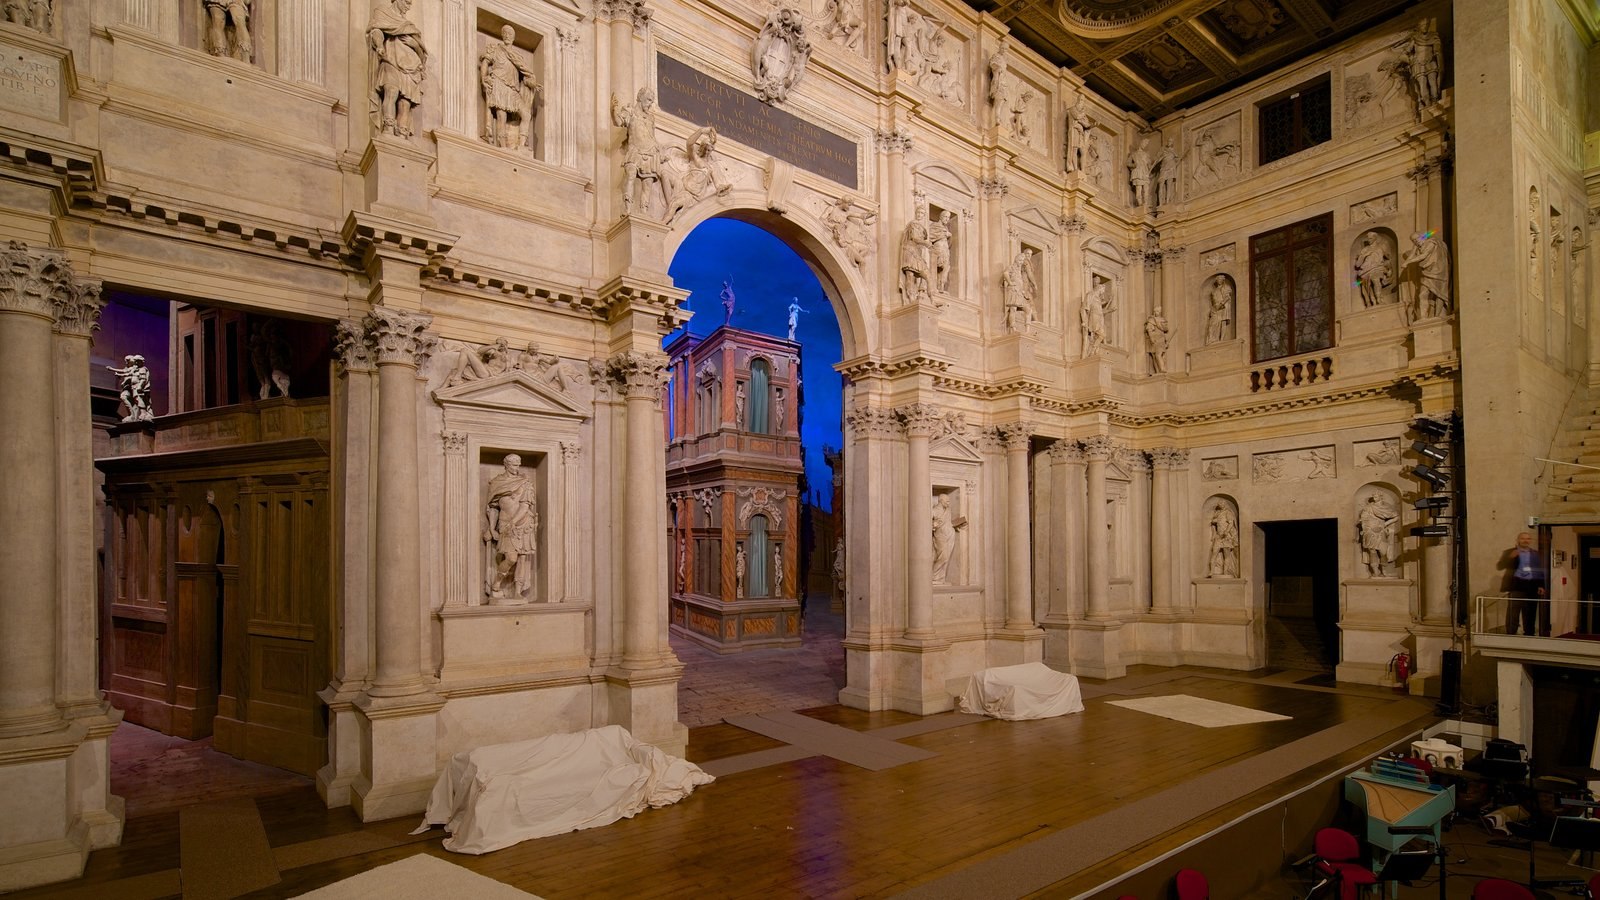 Vicenza showing theater scenes and interior views